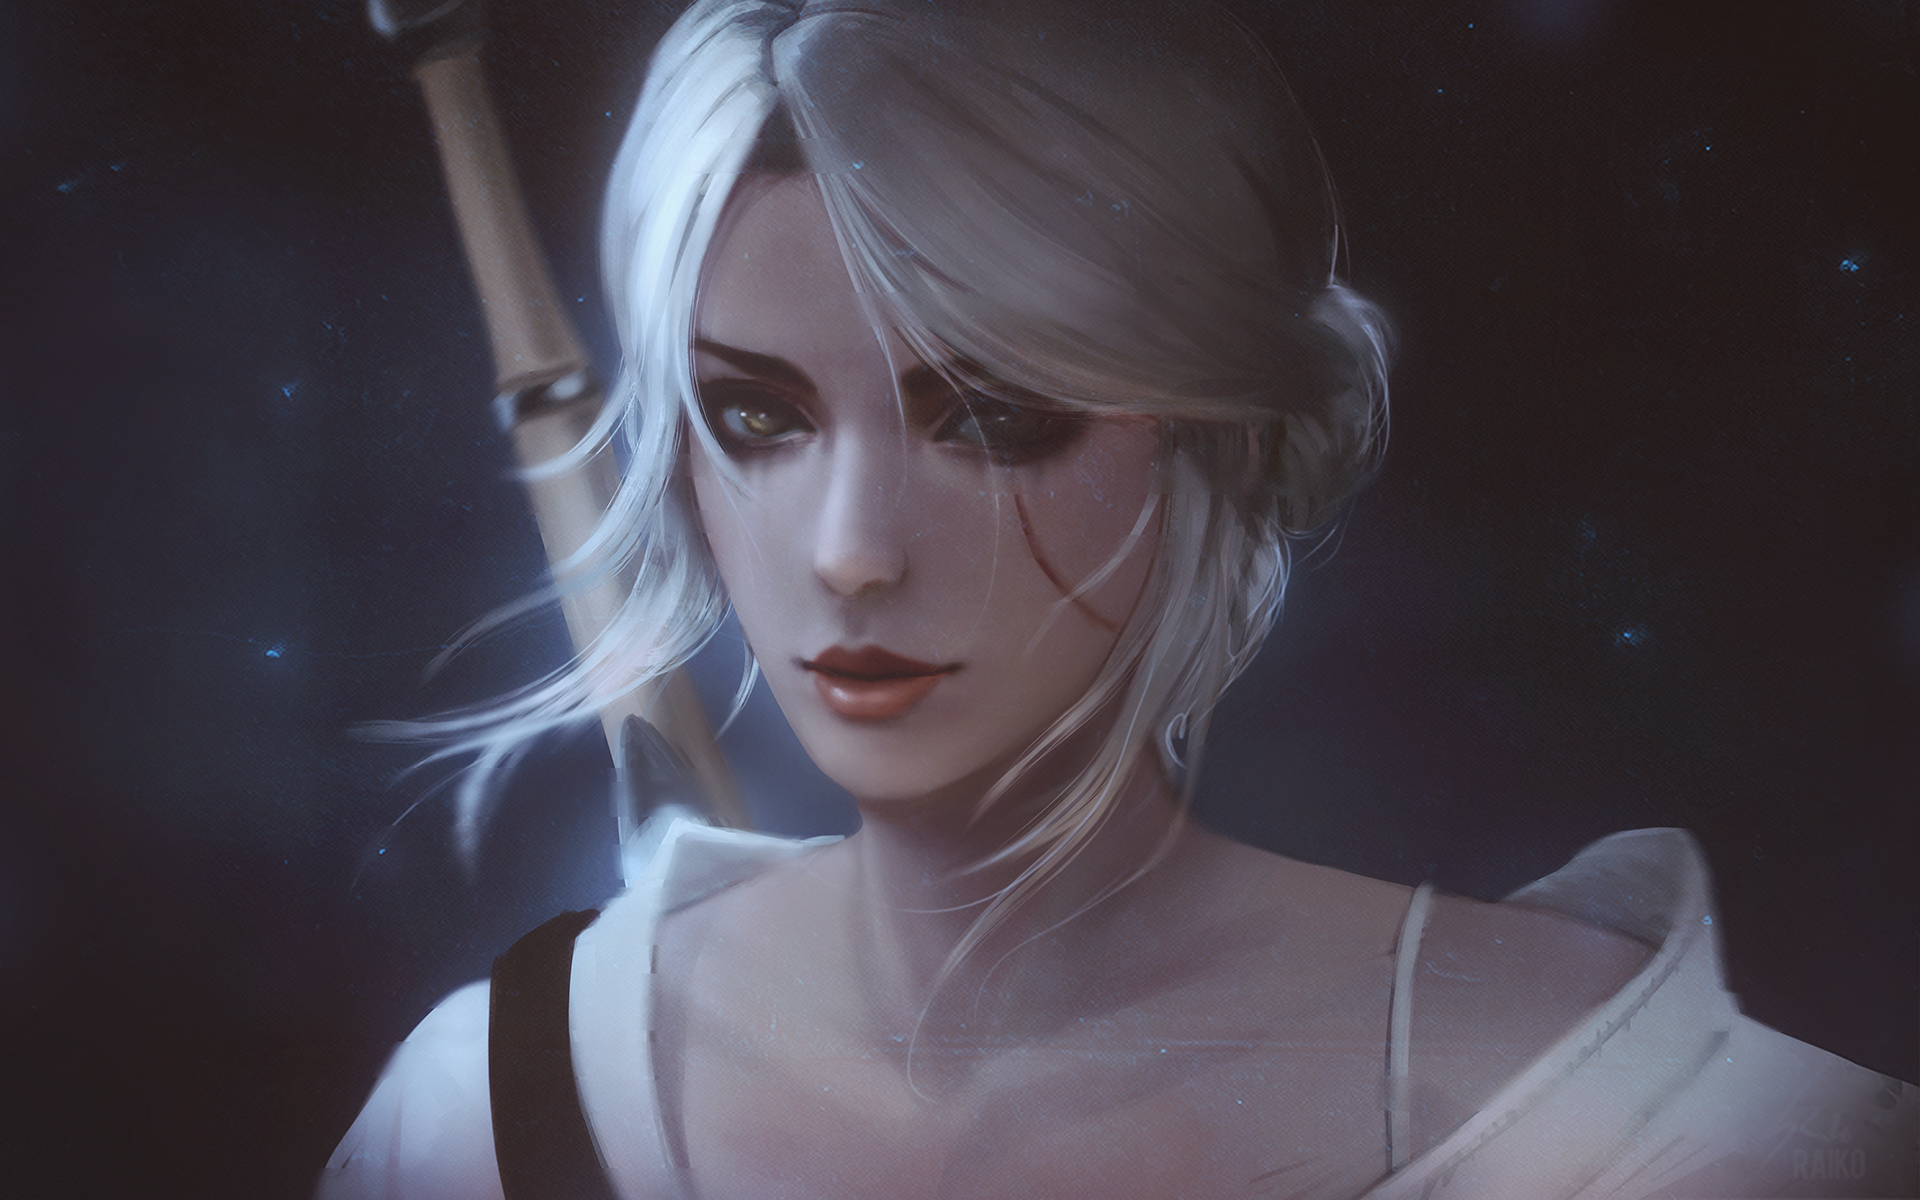 Witcher Ciri By Raikoart On Deviantart